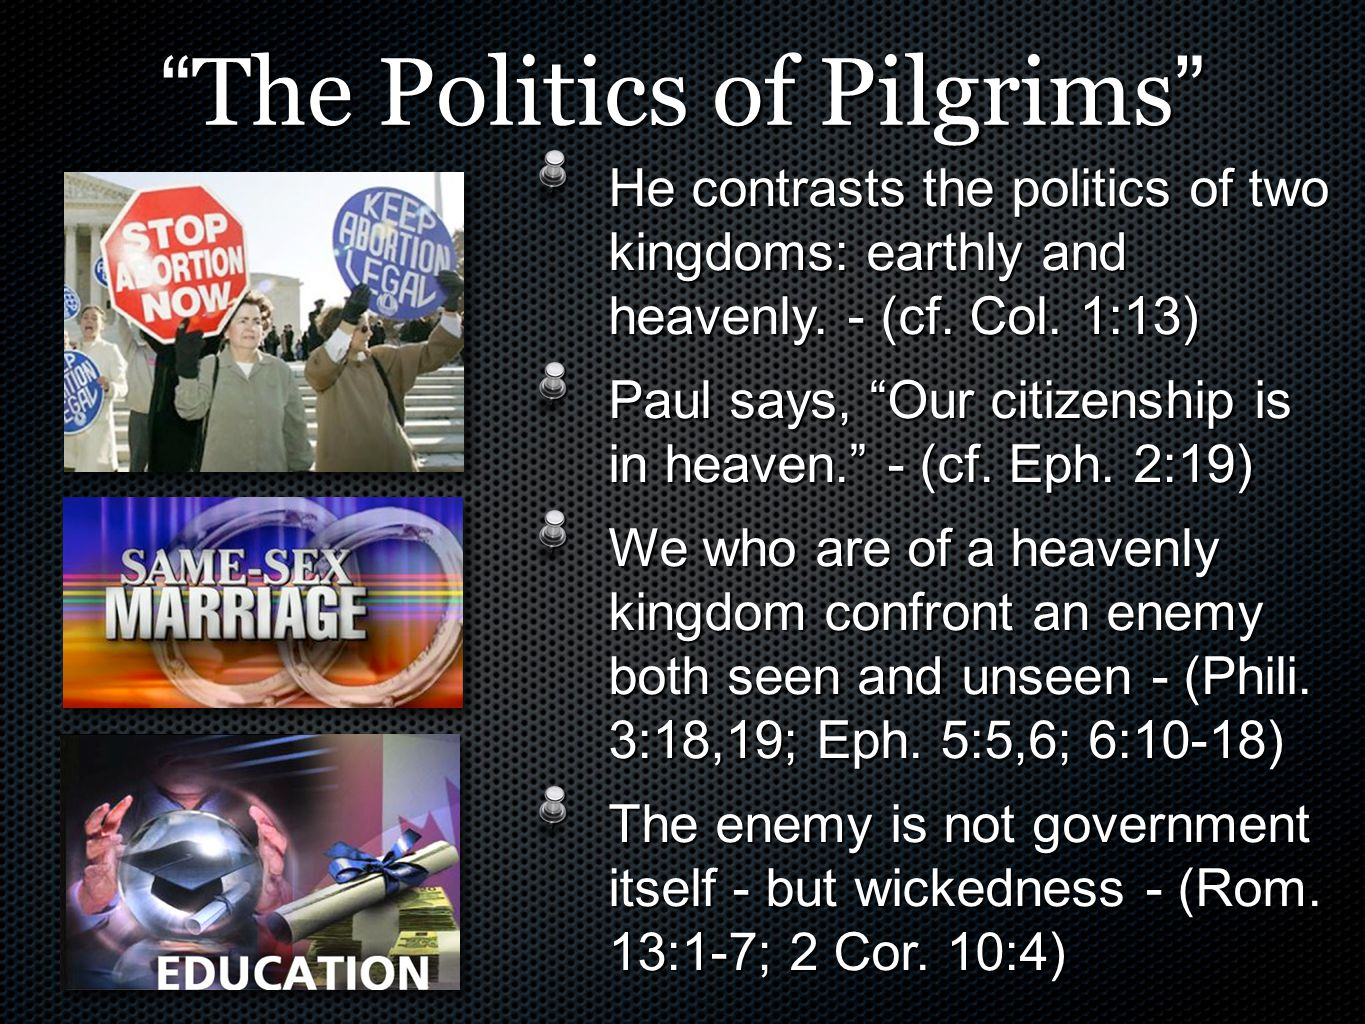 The Politics of Pilgrims He contrasts the politics of two kingdoms: earthly and heavenly.